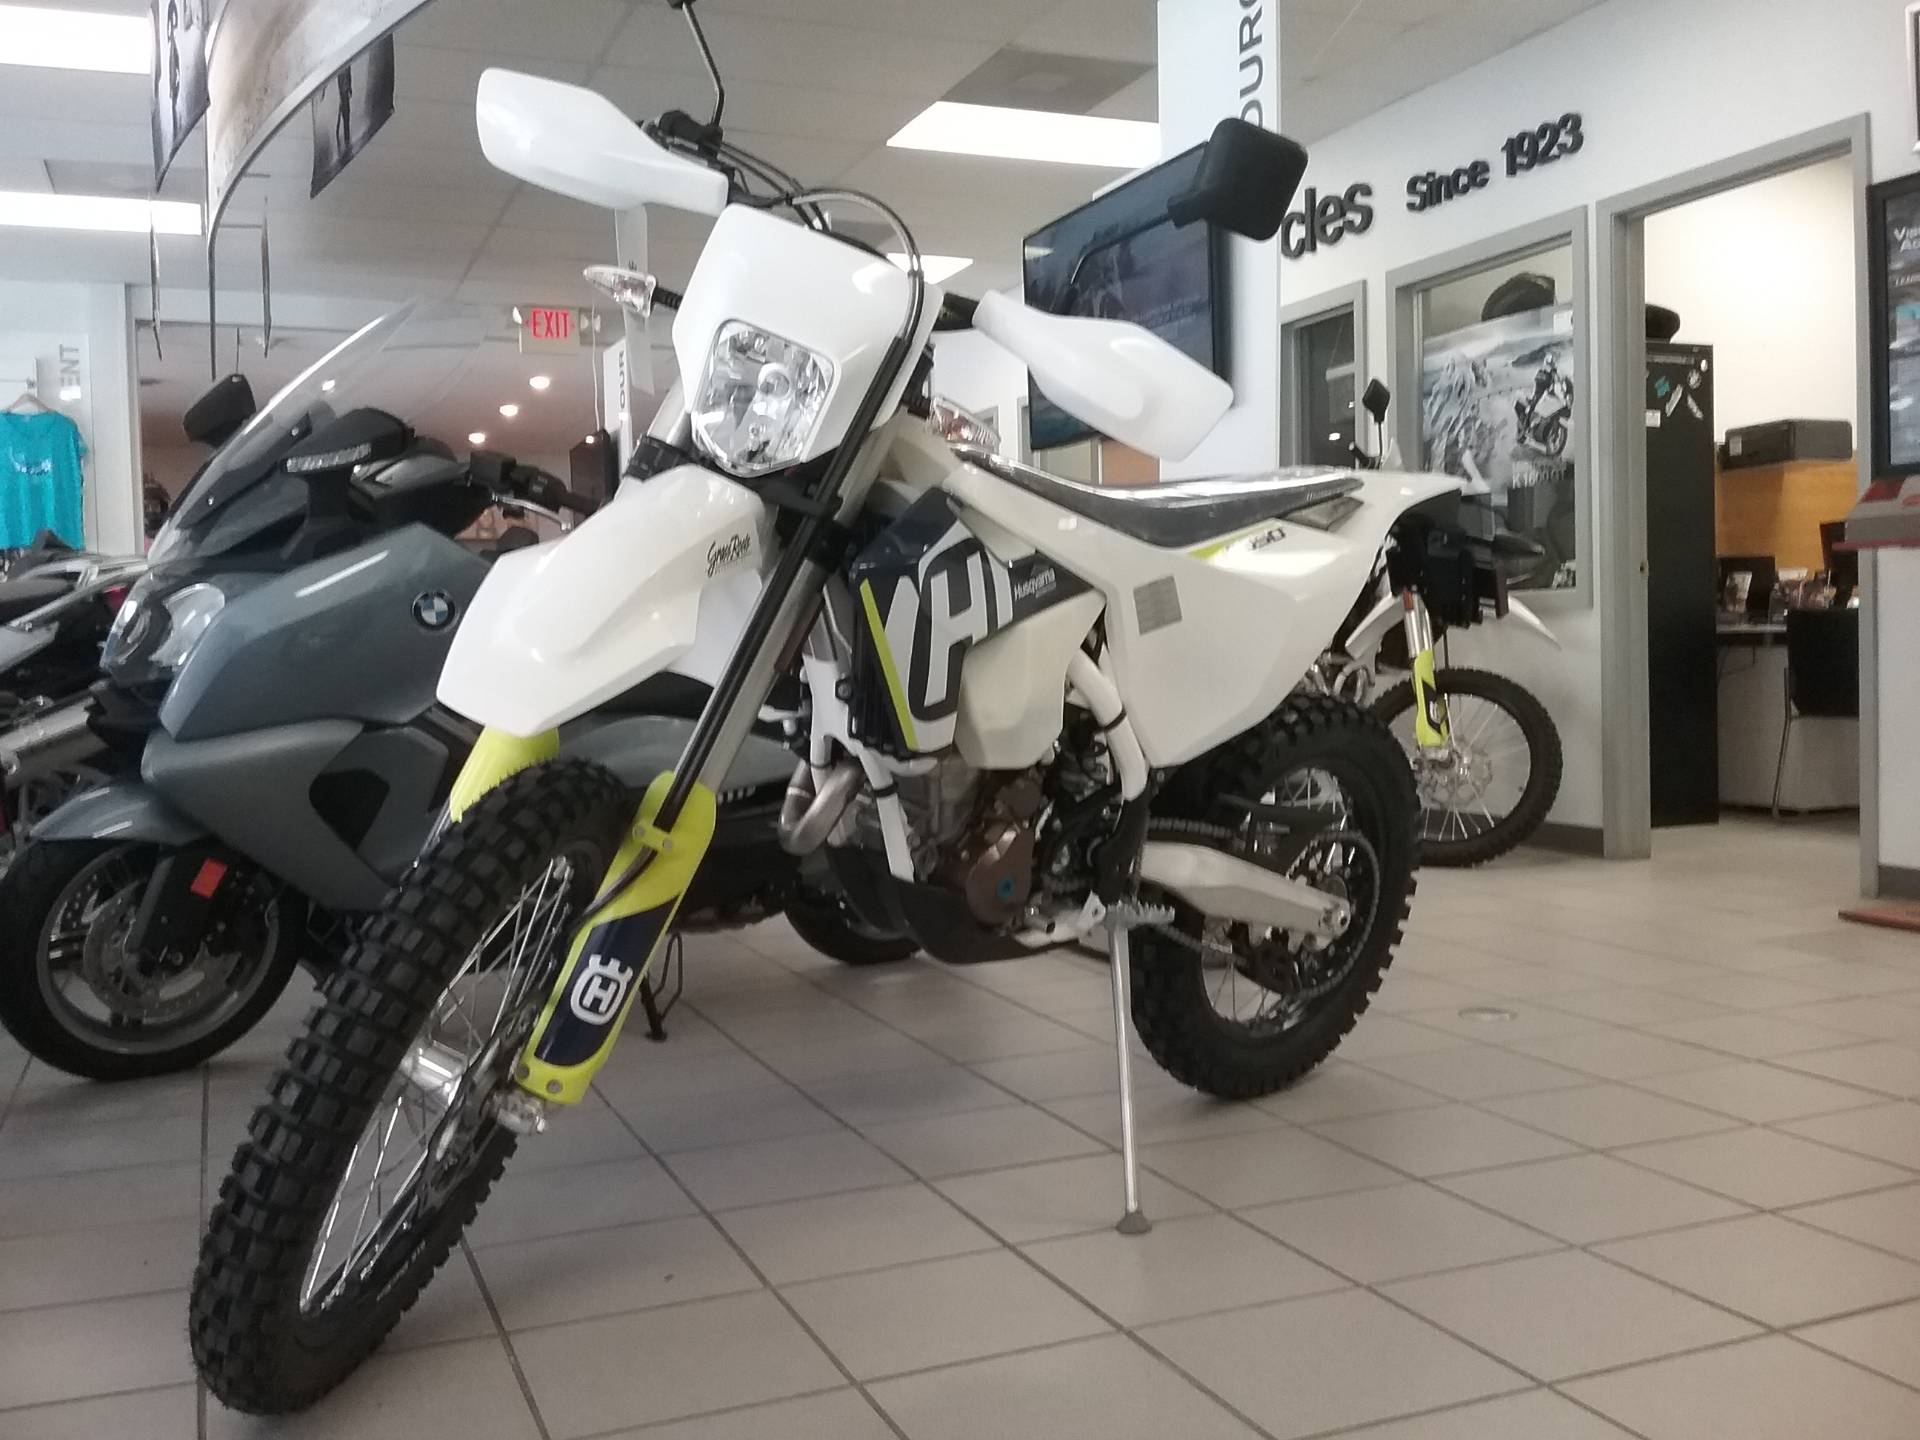 2018 Husqvarna FE 350/350 S in Cape Girardeau, Missouri - Photo 3